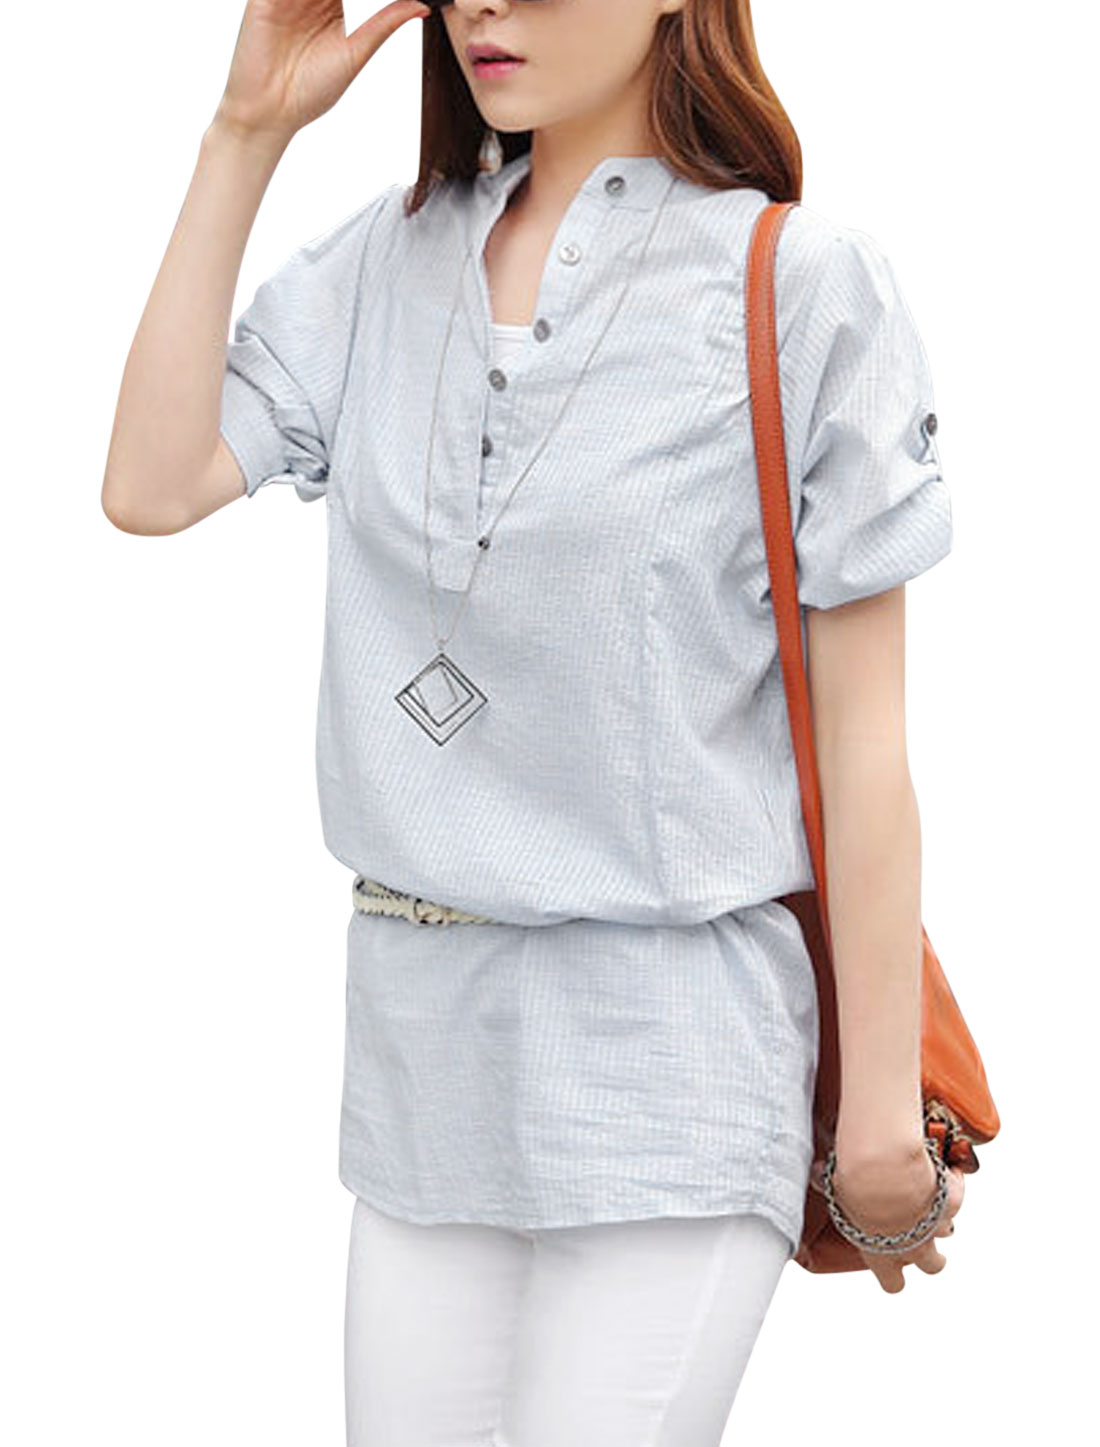 Roll Up Sleeve Gathered Detail Half Button White XS Shirt for Ladies